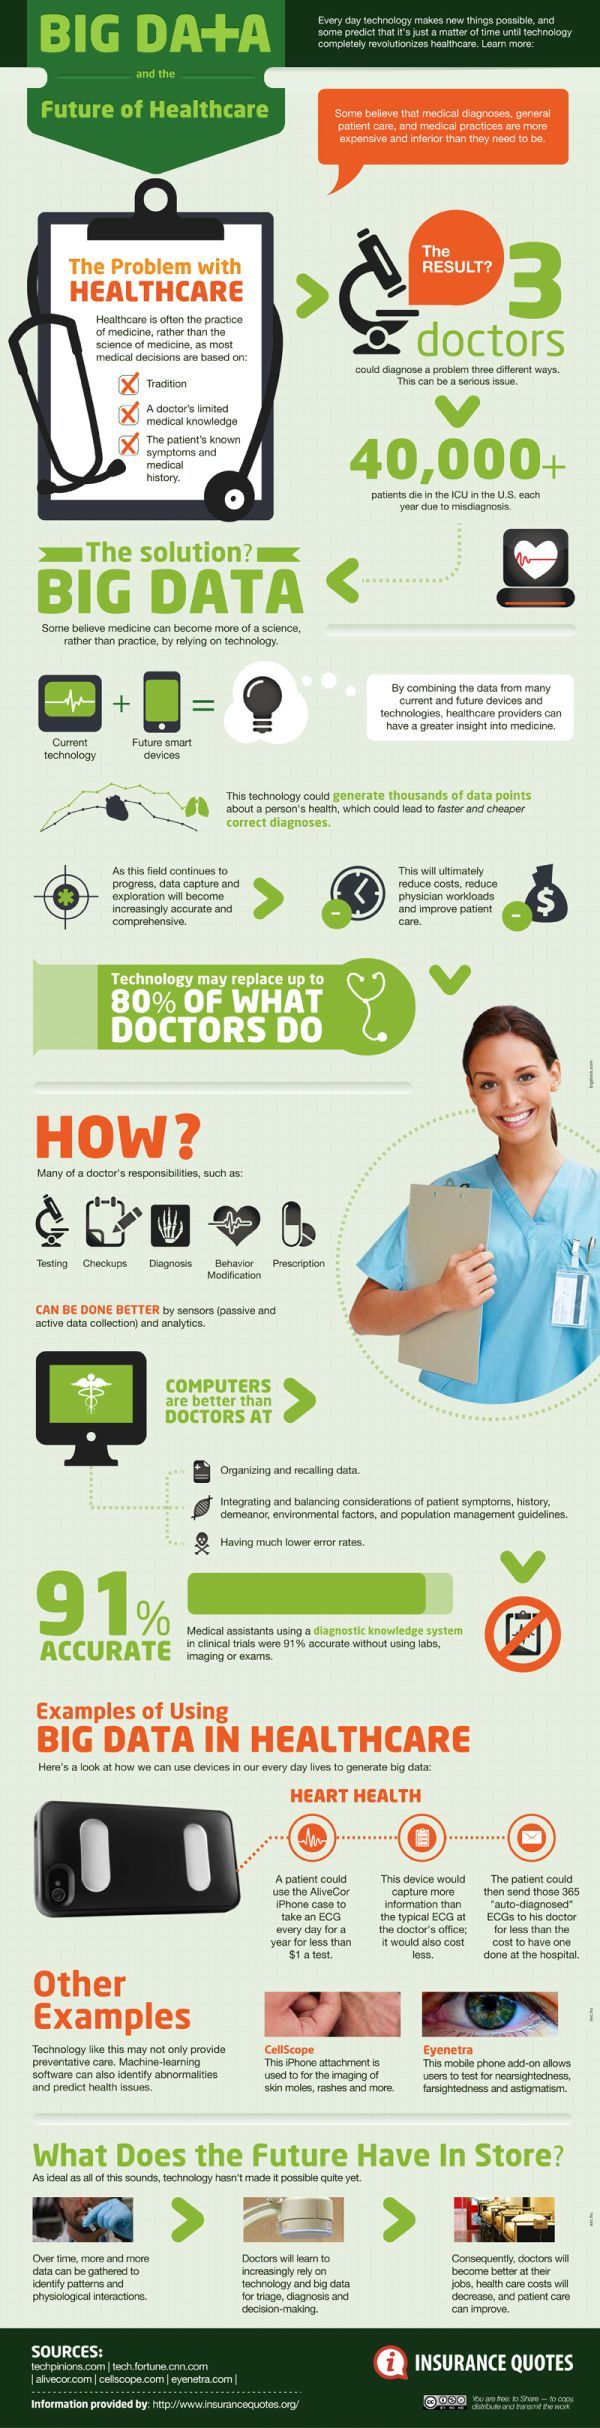 Big data and the future of health care [infographic] #SXSH #hcsm #SocPharm